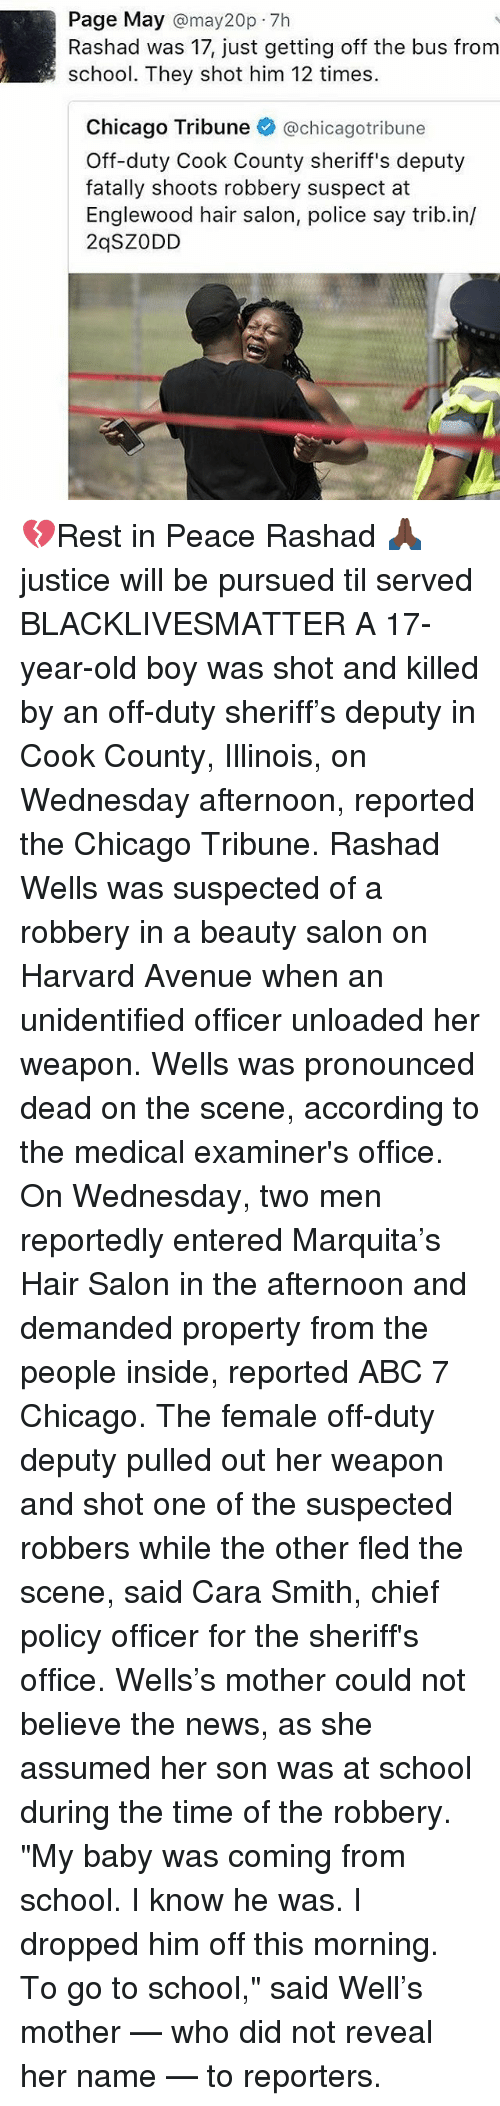 """Abc, Black Lives Matter, and Chicago: Page May  may20p.7h  Rashad was 17, just getting off the bus from  school. They shot him 12 times.  Chicago Tribune  @chicago tribune  Off-duty Cook County sheriff's deputy  fatally shoots robbery suspect at  Englewood hair salon, police say trib.in/  2qSZ ODD 💔Rest in Peace Rashad 🙏🏿 justice will be pursued til served BLACKLIVESMATTER A 17-year-old boy was shot and killed by an off-duty sheriff's deputy in Cook County, Illinois, on Wednesday afternoon, reported the Chicago Tribune. Rashad Wells was suspected of a robbery in a beauty salon on Harvard Avenue when an unidentified officer unloaded her weapon. Wells was pronounced dead on the scene, according to the medical examiner's office. On Wednesday, two men reportedly entered Marquita's Hair Salon in the afternoon and demanded property from the people inside, reported ABC 7 Chicago. The female off-duty deputy pulled out her weapon and shot one of the suspected robbers while the other fled the scene, said Cara Smith, chief policy officer for the sheriff's office. Wells's mother could not believe the news, as she assumed her son was at school during the time of the robbery. """"My baby was coming from school. I know he was. I dropped him off this morning. To go to school,"""" said Well's mother — who did not reveal her name — to reporters."""